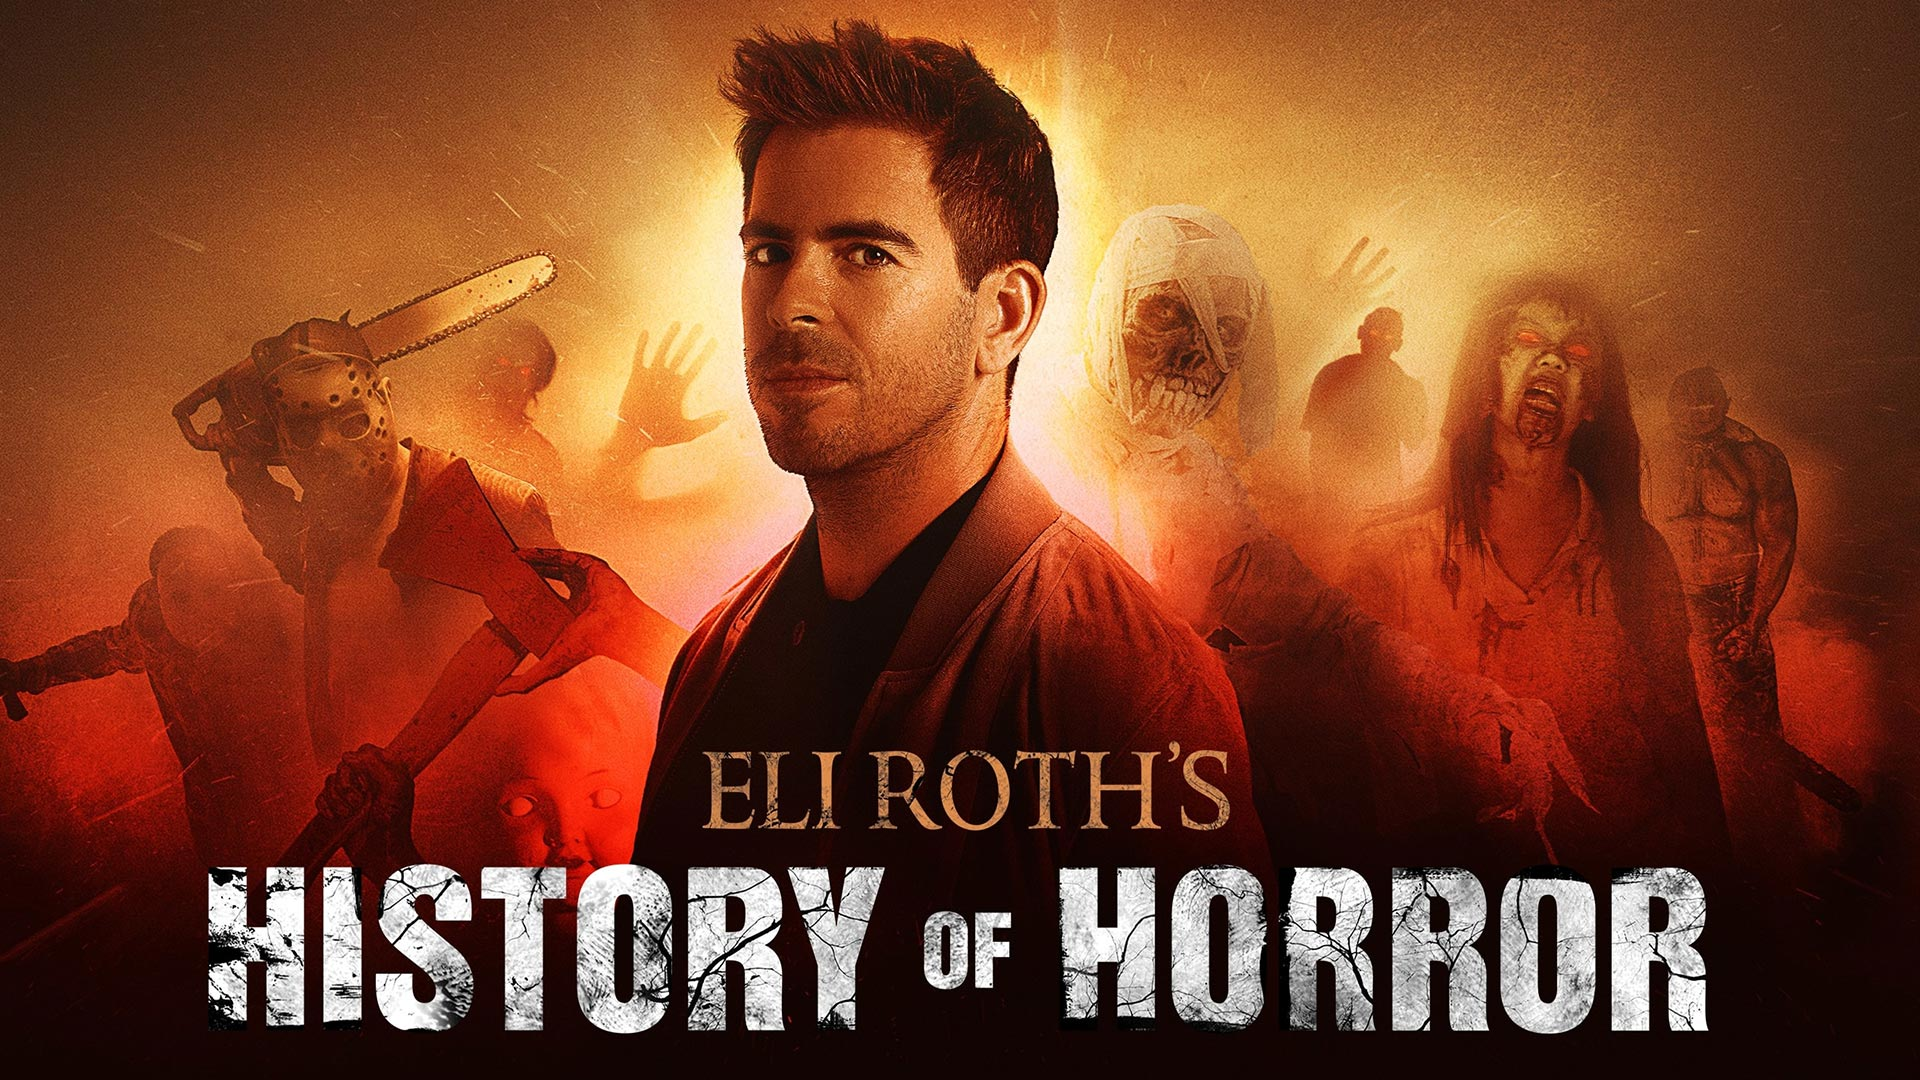 Watch Eli Roth's History of Horror Season 1 | Prime Video